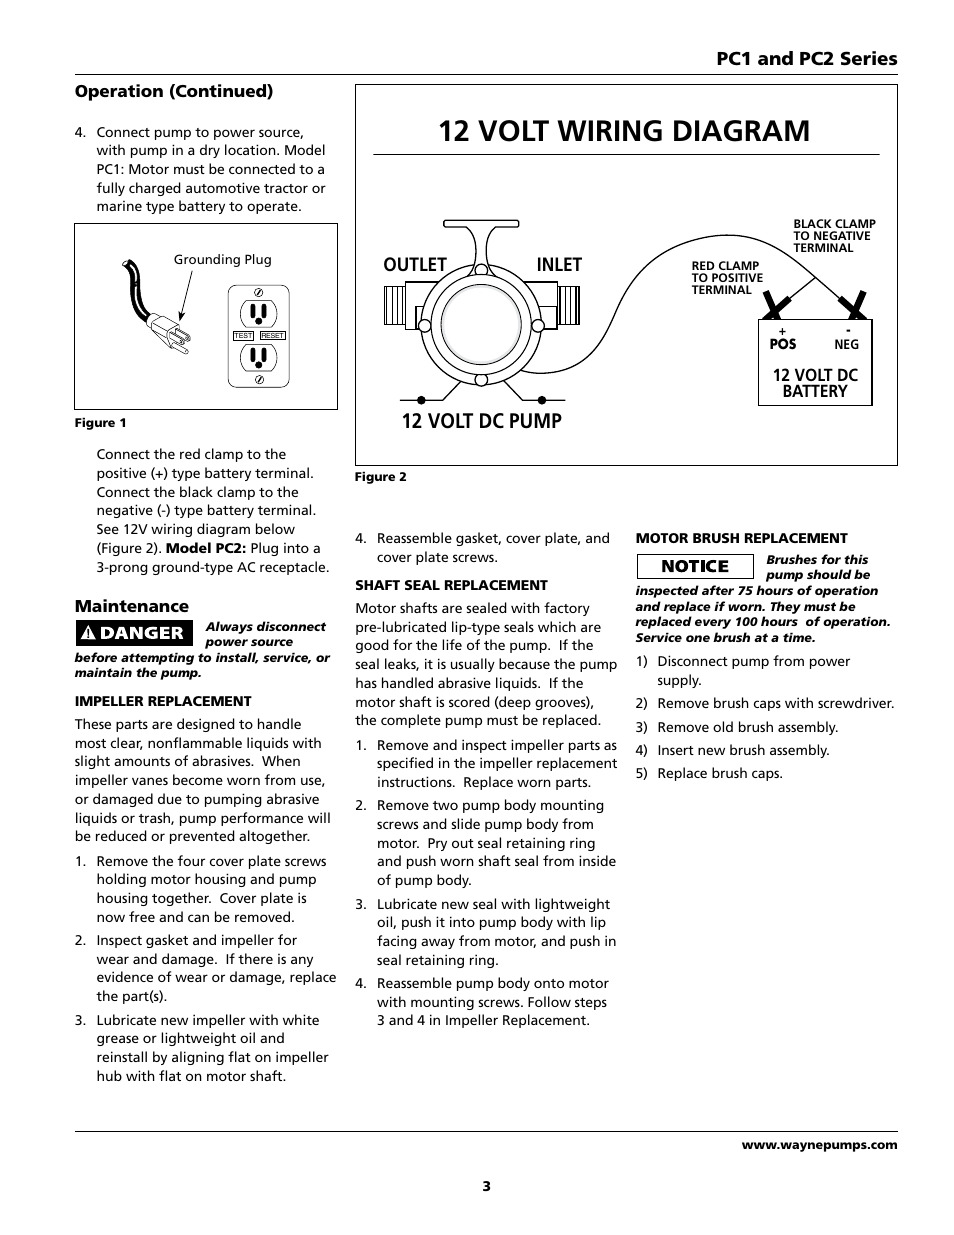 12 volt wiring diagram, 12 volt dc pump, inlet outlet wayne pc2 dc wiring diagram for boats 12 volt wiring diagram, 12 volt dc pump, inlet outlet pc1 and pc2